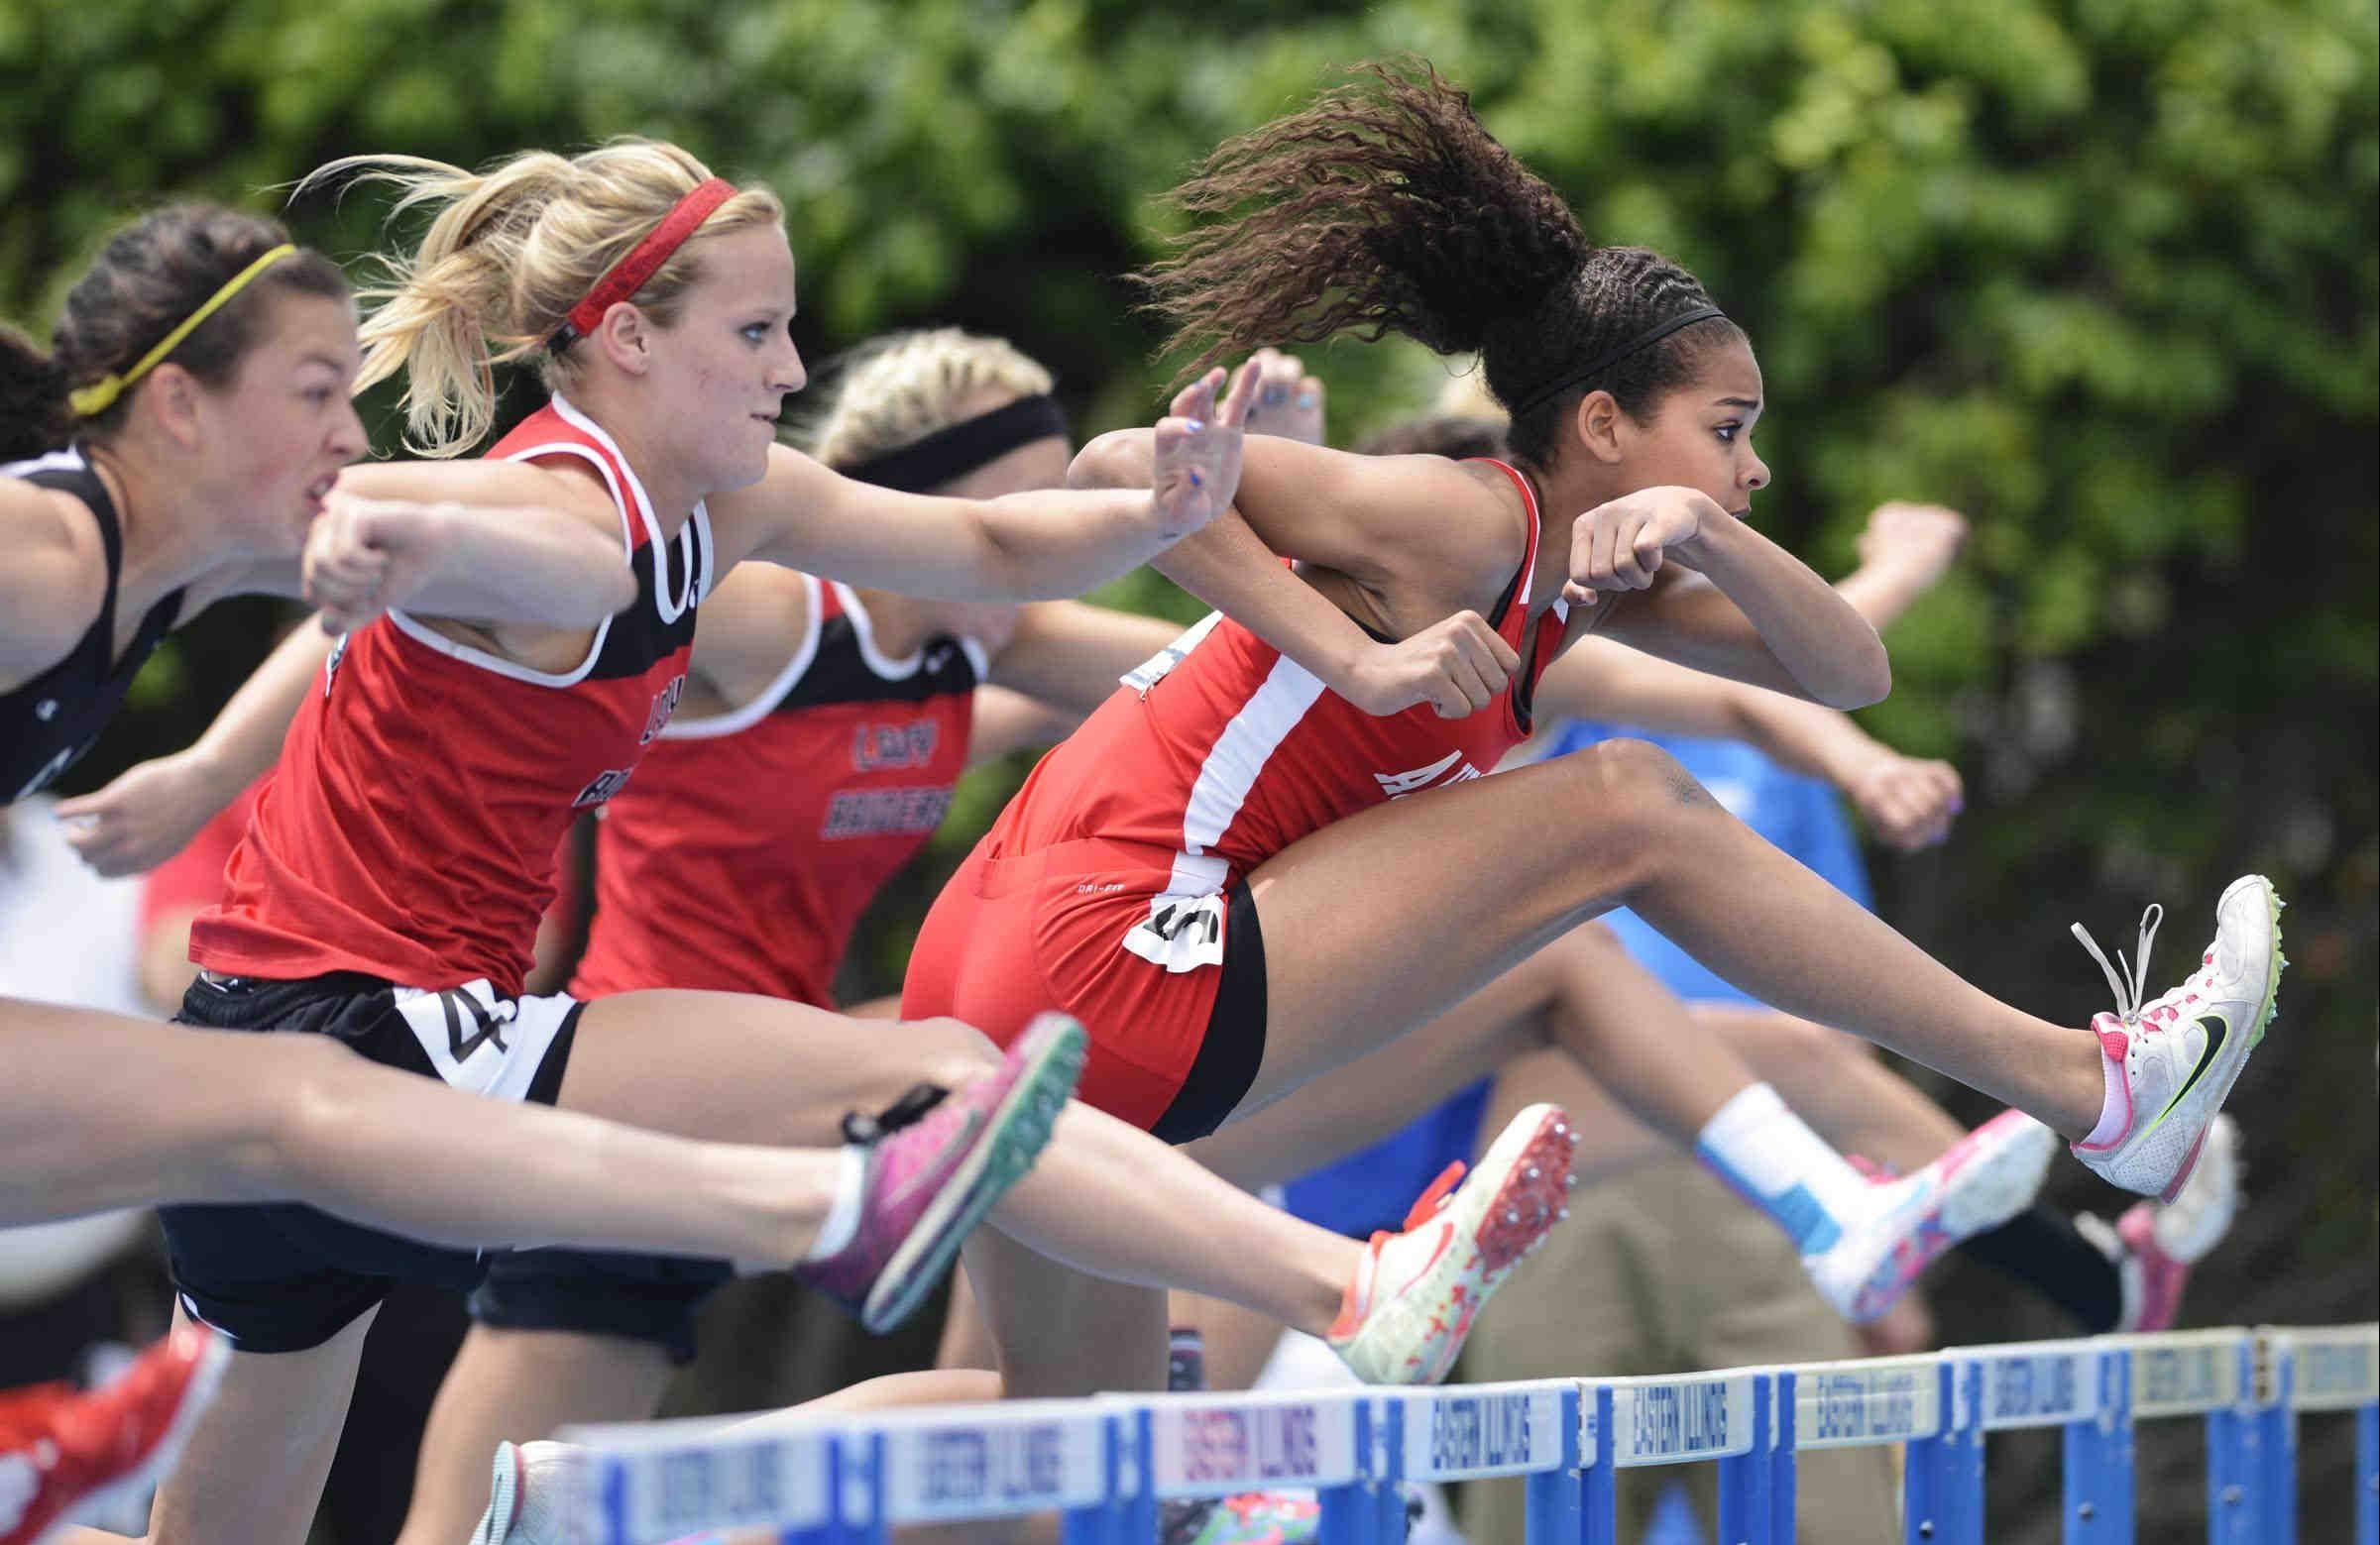 Aurora Christian's Peyton Wade leads the field over the first hurdle on her way to a state championship in the 100 meter high hurdles Saturday.